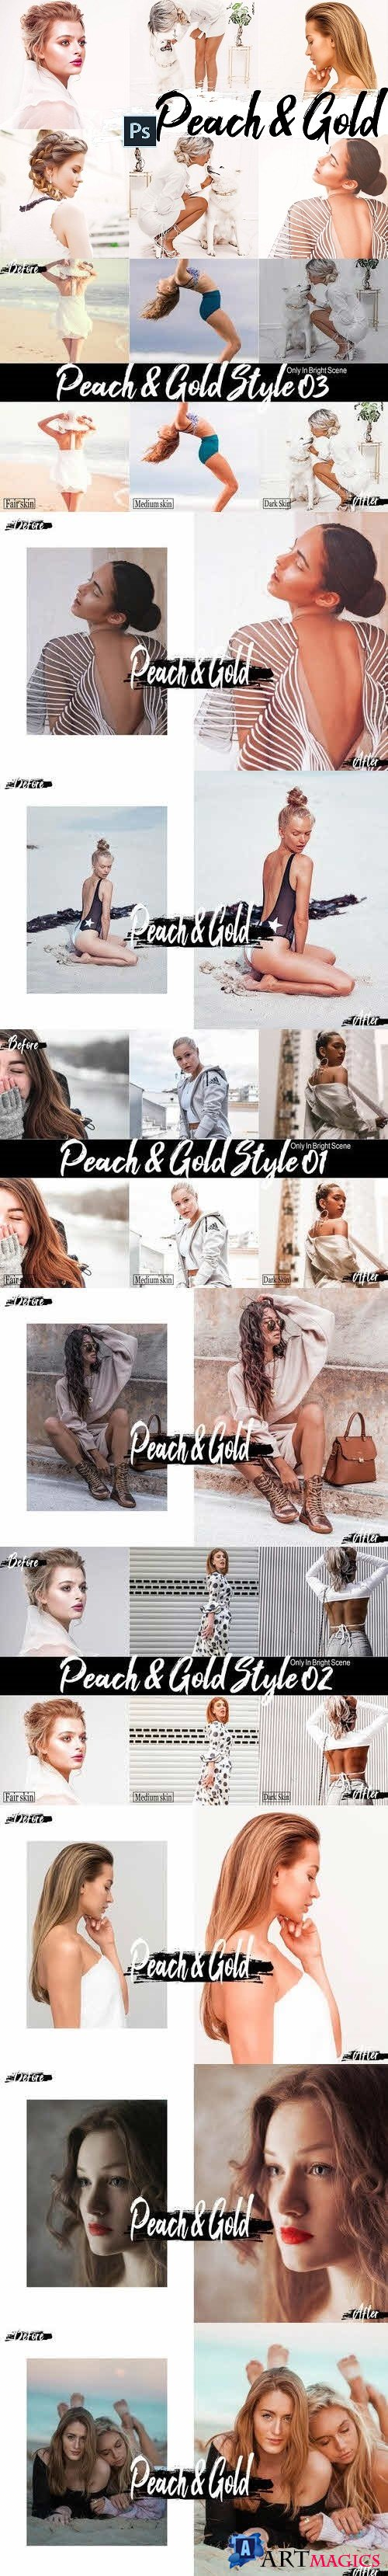 09 Peach & Gold Photoshop Actions, ACR and LUT presets  423189